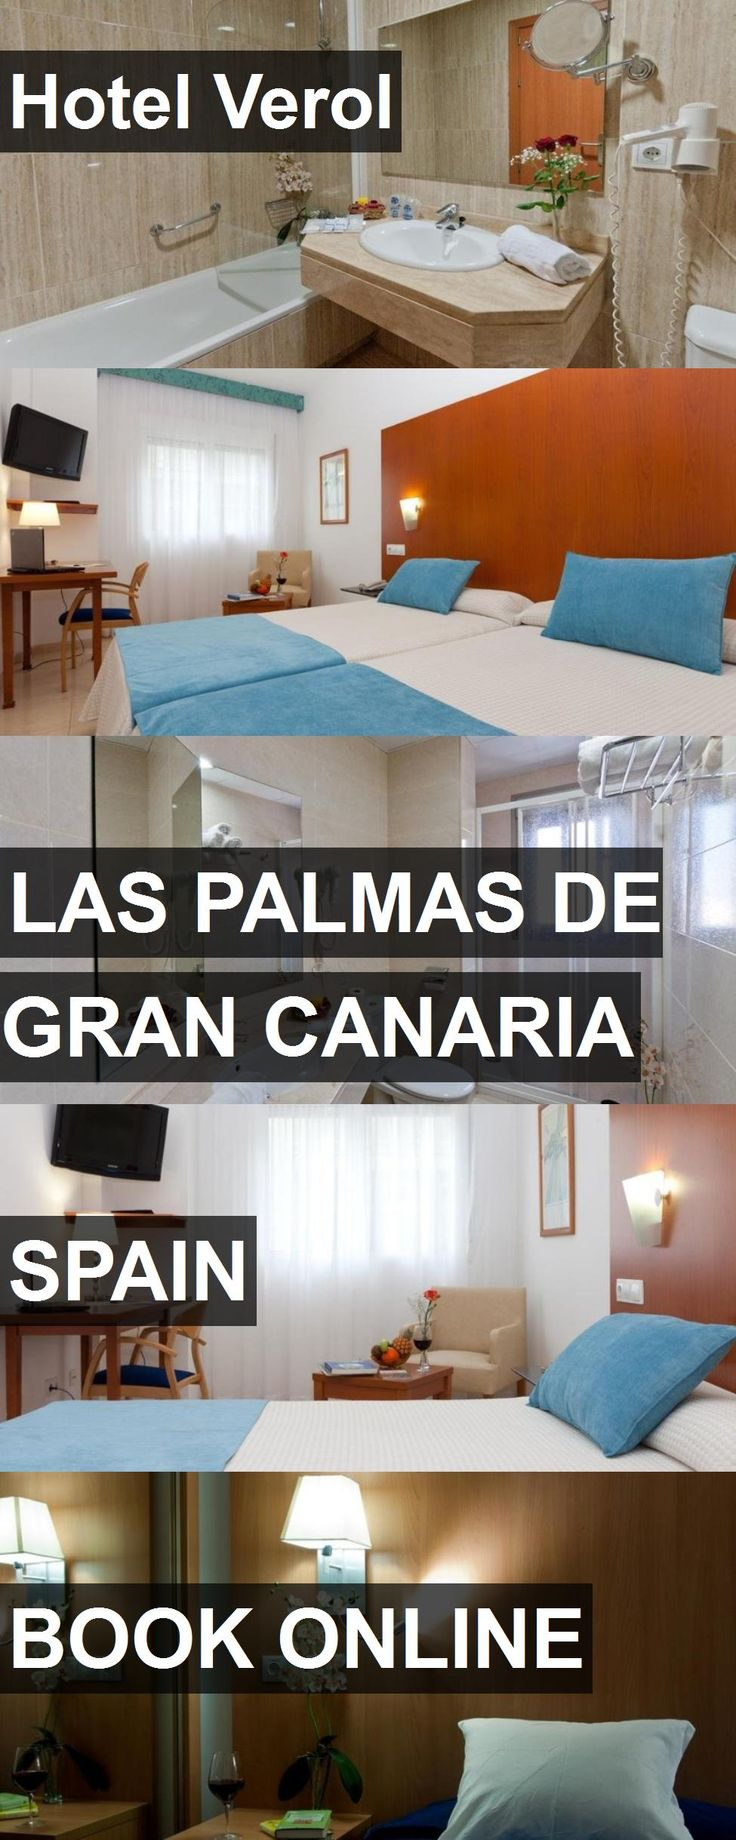 Hotel Hotel Verol in Las Palmas de Gran Canaria, Spain. For more information, photos, reviews and best prices please follow the link. #Spain #LasPalmasdeGranCanaria #HotelVerol #hotel #travel #vacation